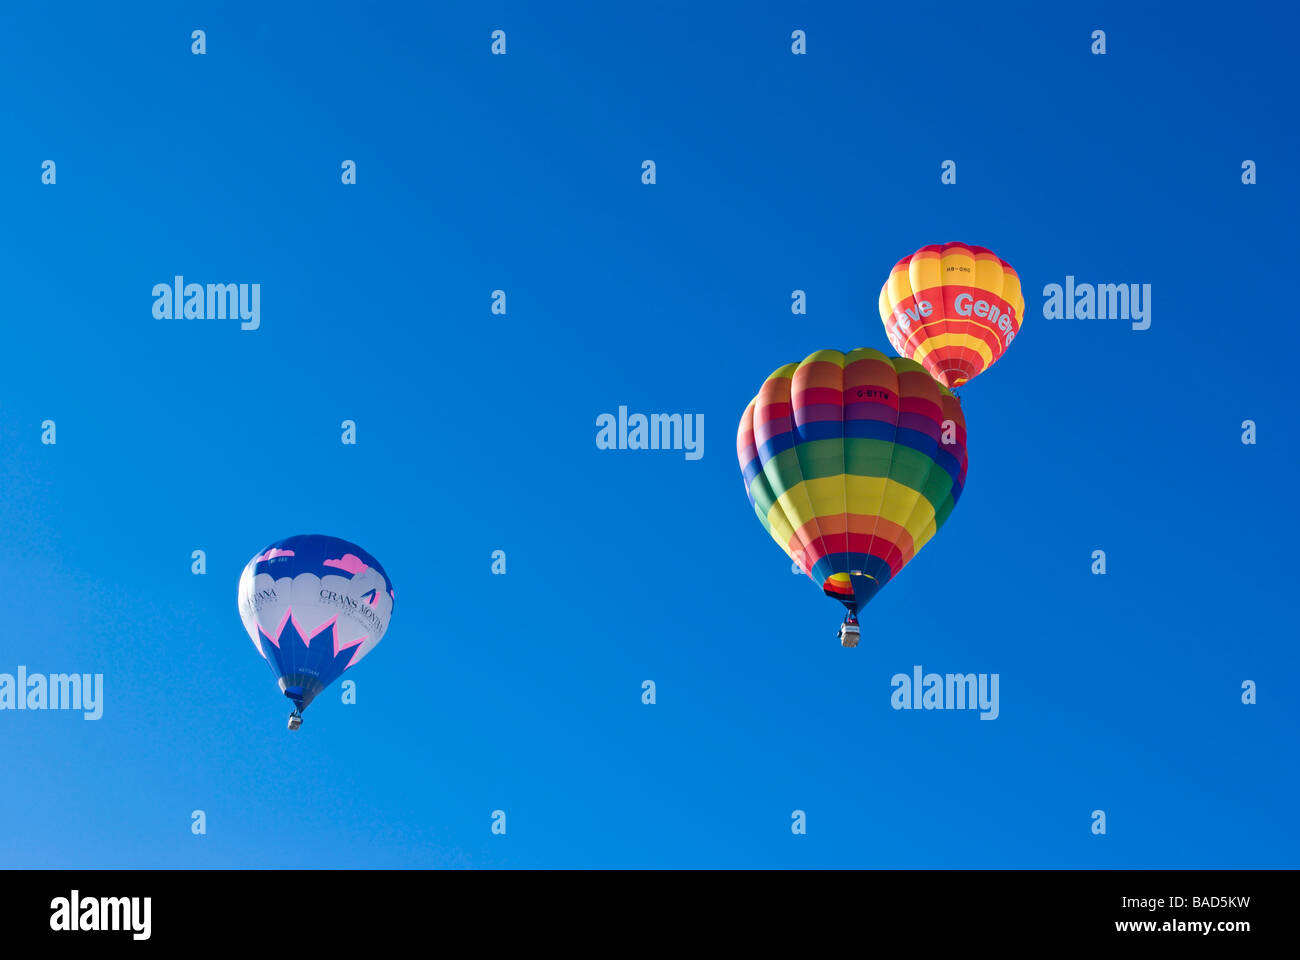 Hot air balloons rising into the clear blue sky at the 2009 Chateau d'Oex international balloon festival / races. Stock Photo